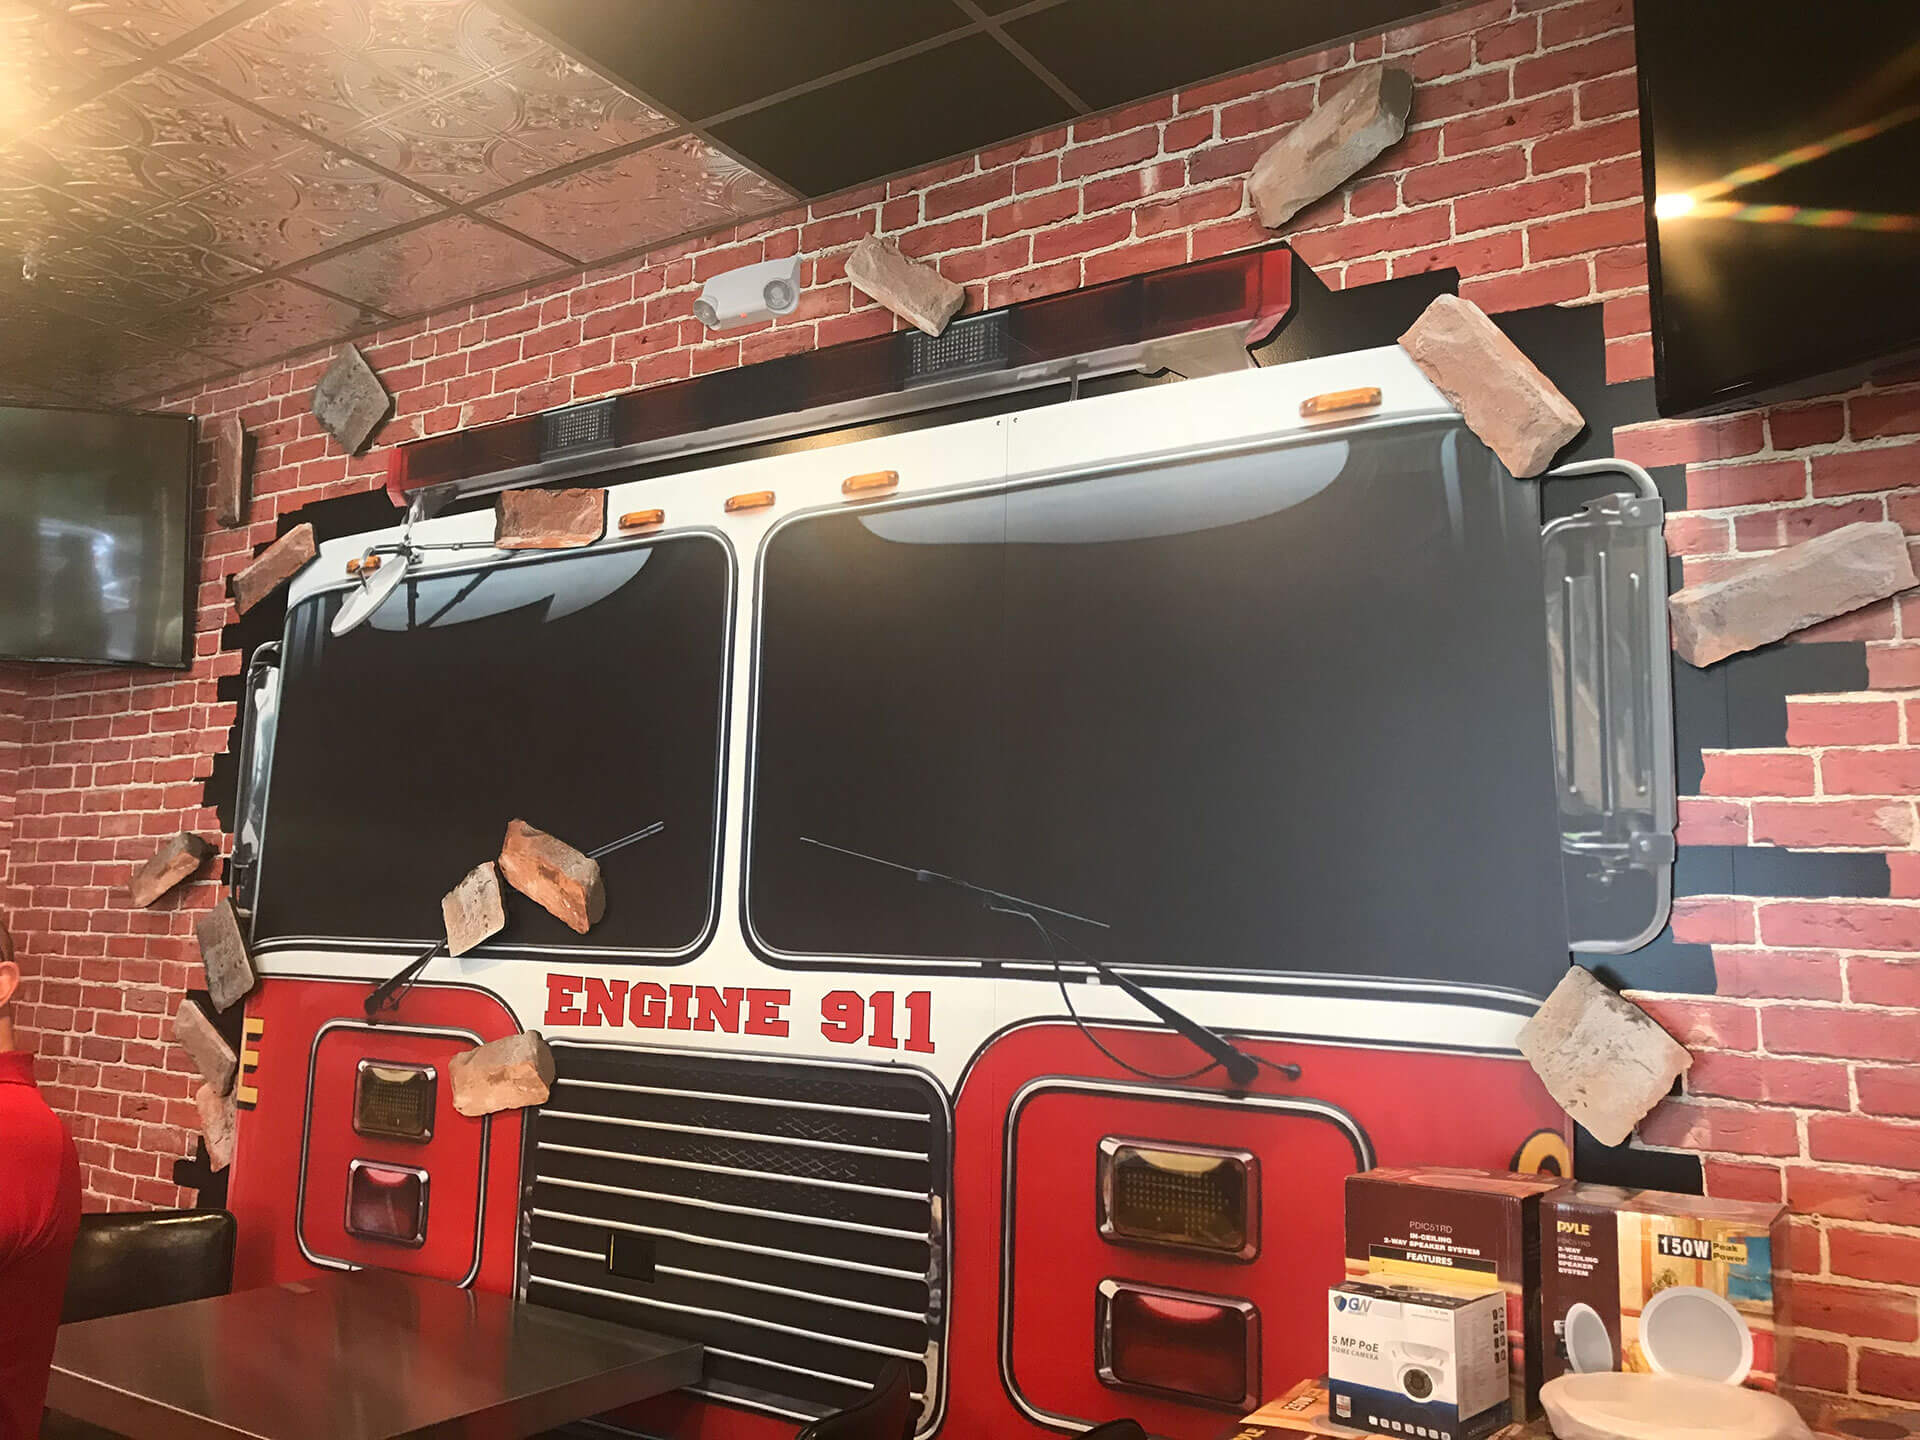 Pizza 911 Truck Graphic Interior